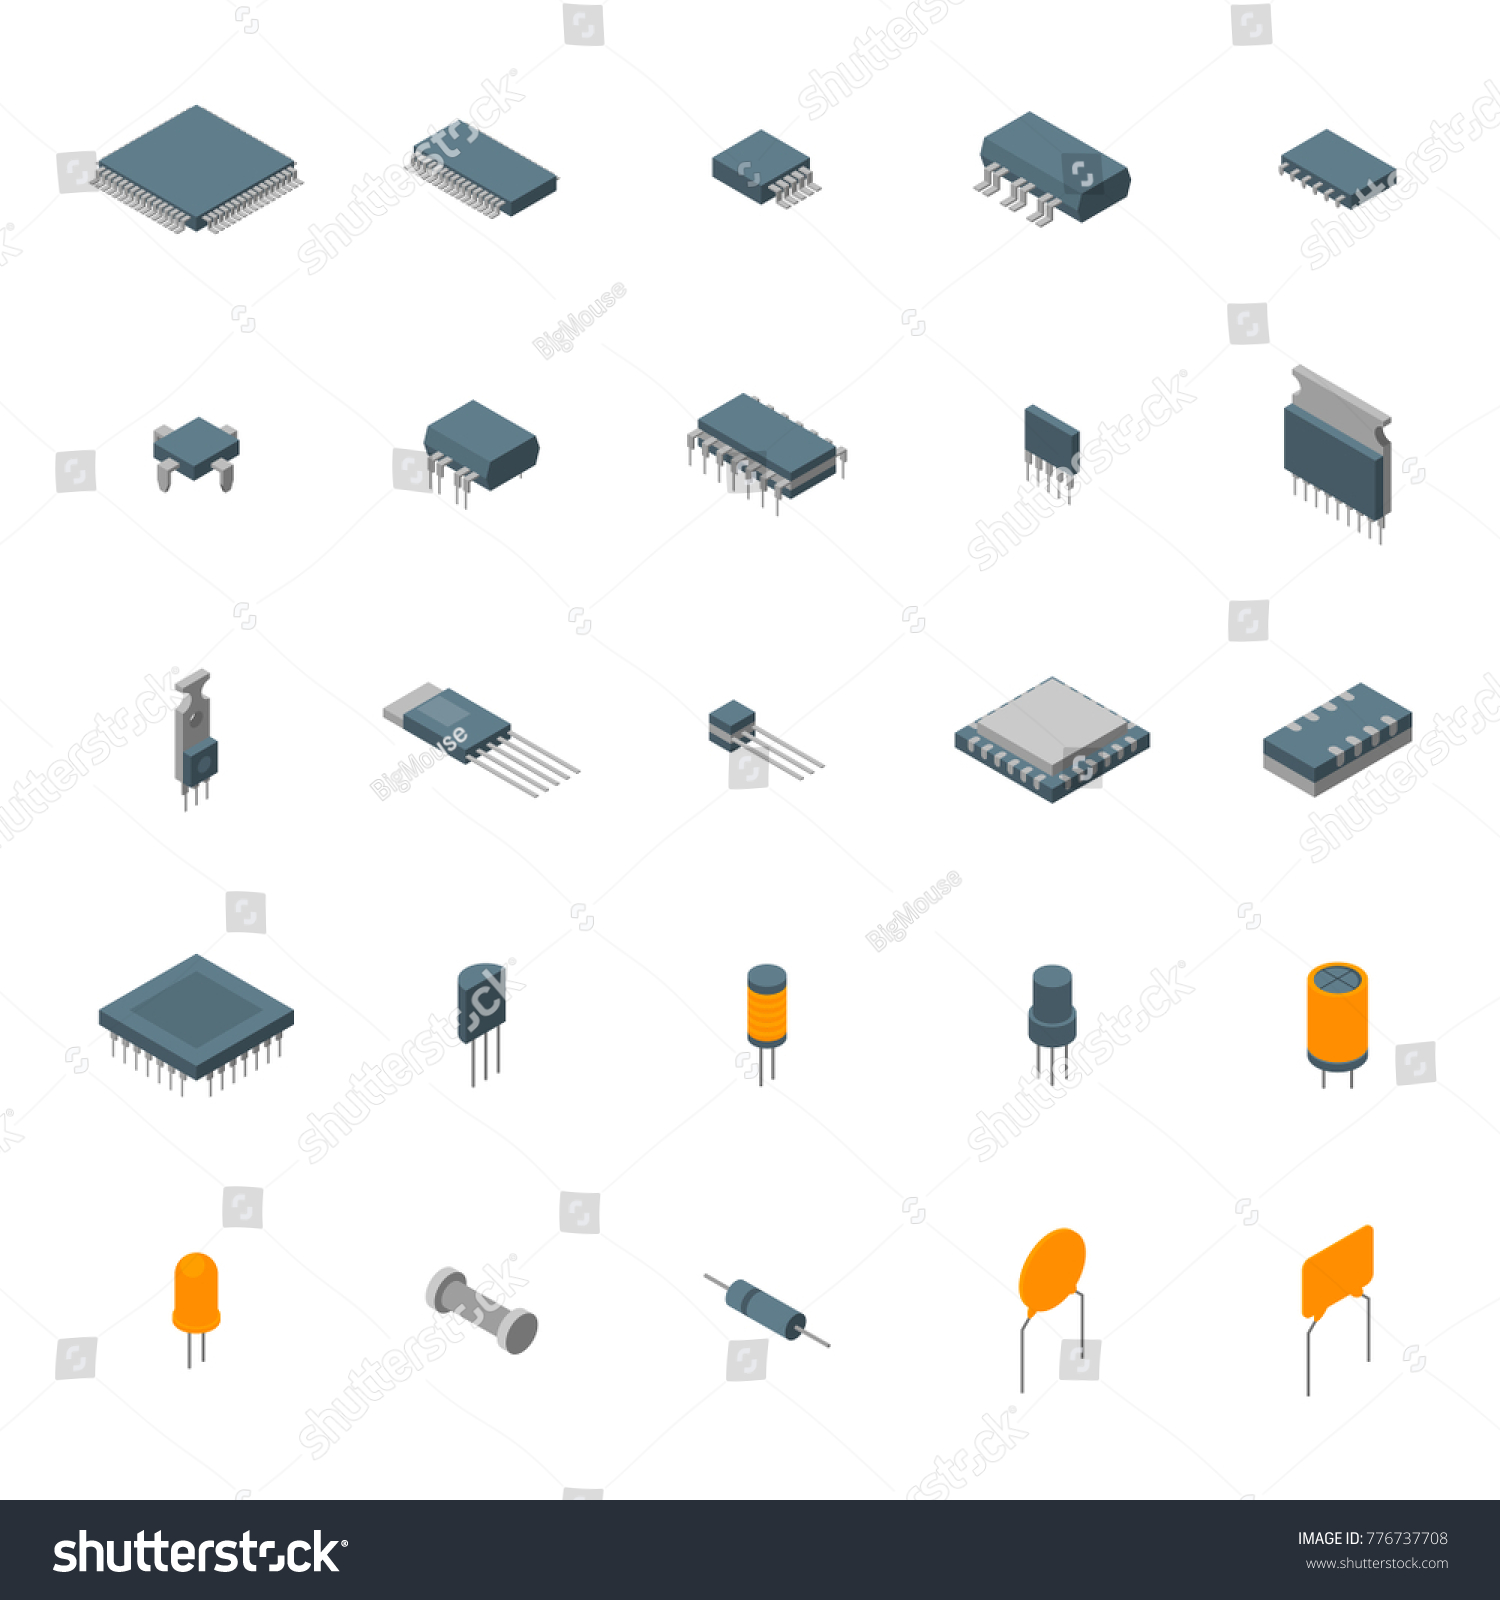 Microchip Computer Electronic Components Icons Set Stock